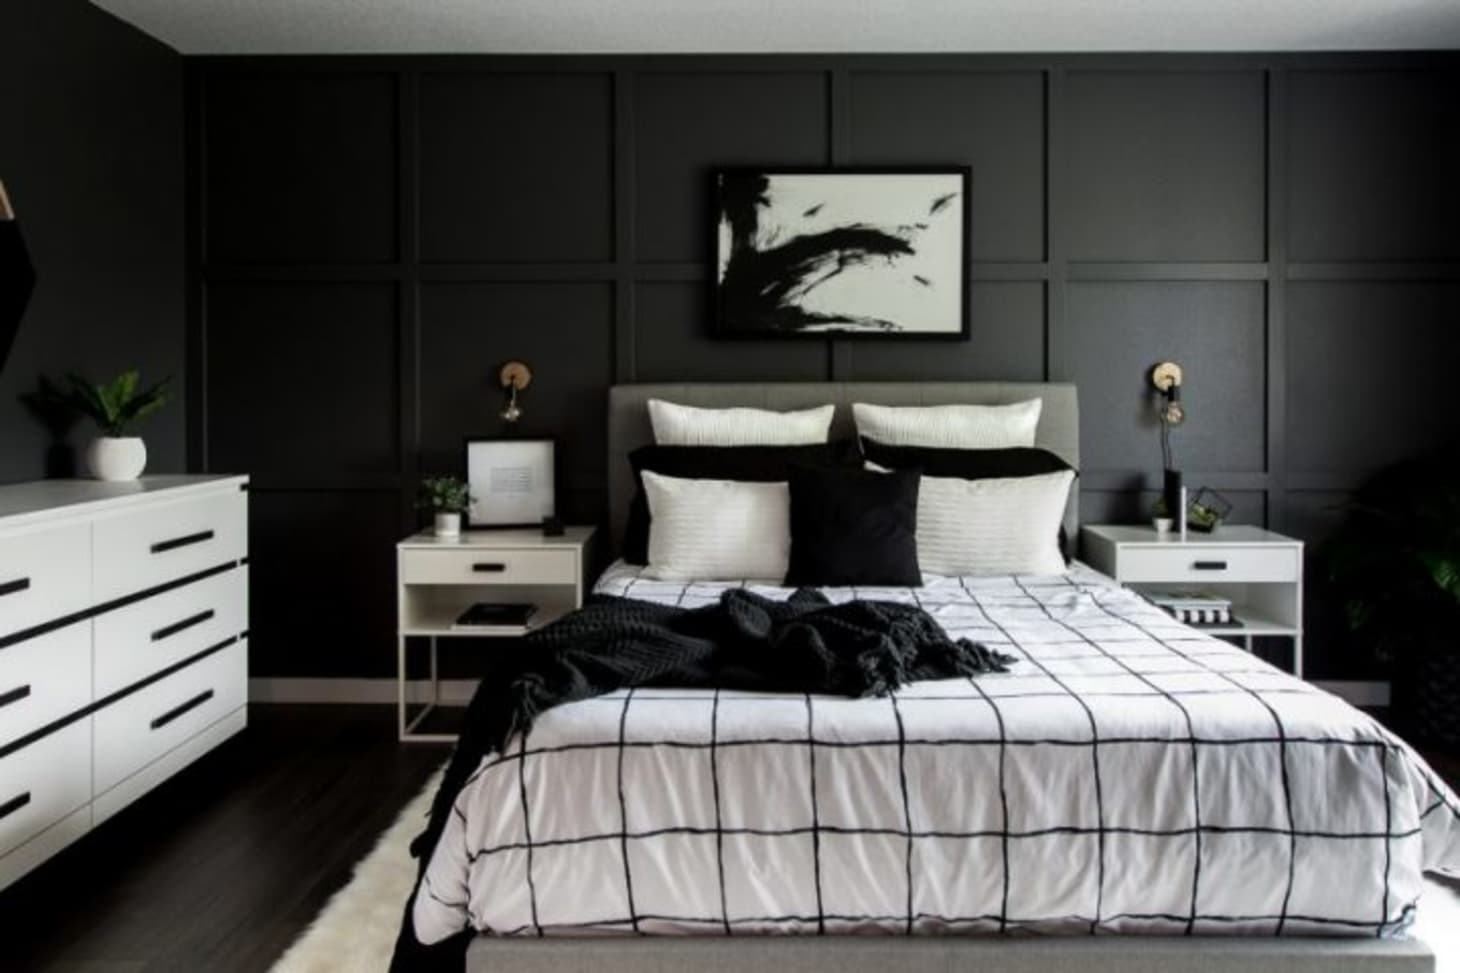 Beautiful Black Painted Rooms - Black Room Ideas | Apartment ... on black white bedroom themes, black white bedding, men bedroom design ideas, black white modern bedroom, black and white decorating tips, black white gardening, black and white home decor ideas, black white books, black white dining, black white paint ideas, modern bedroom design ideas, black white kitchen, black and white bedroom, black white bedroom sets, black white photography, black white brown bedroom, black and white rooms, black white halloween, black white bathroom, white and teal bedroom ideas,